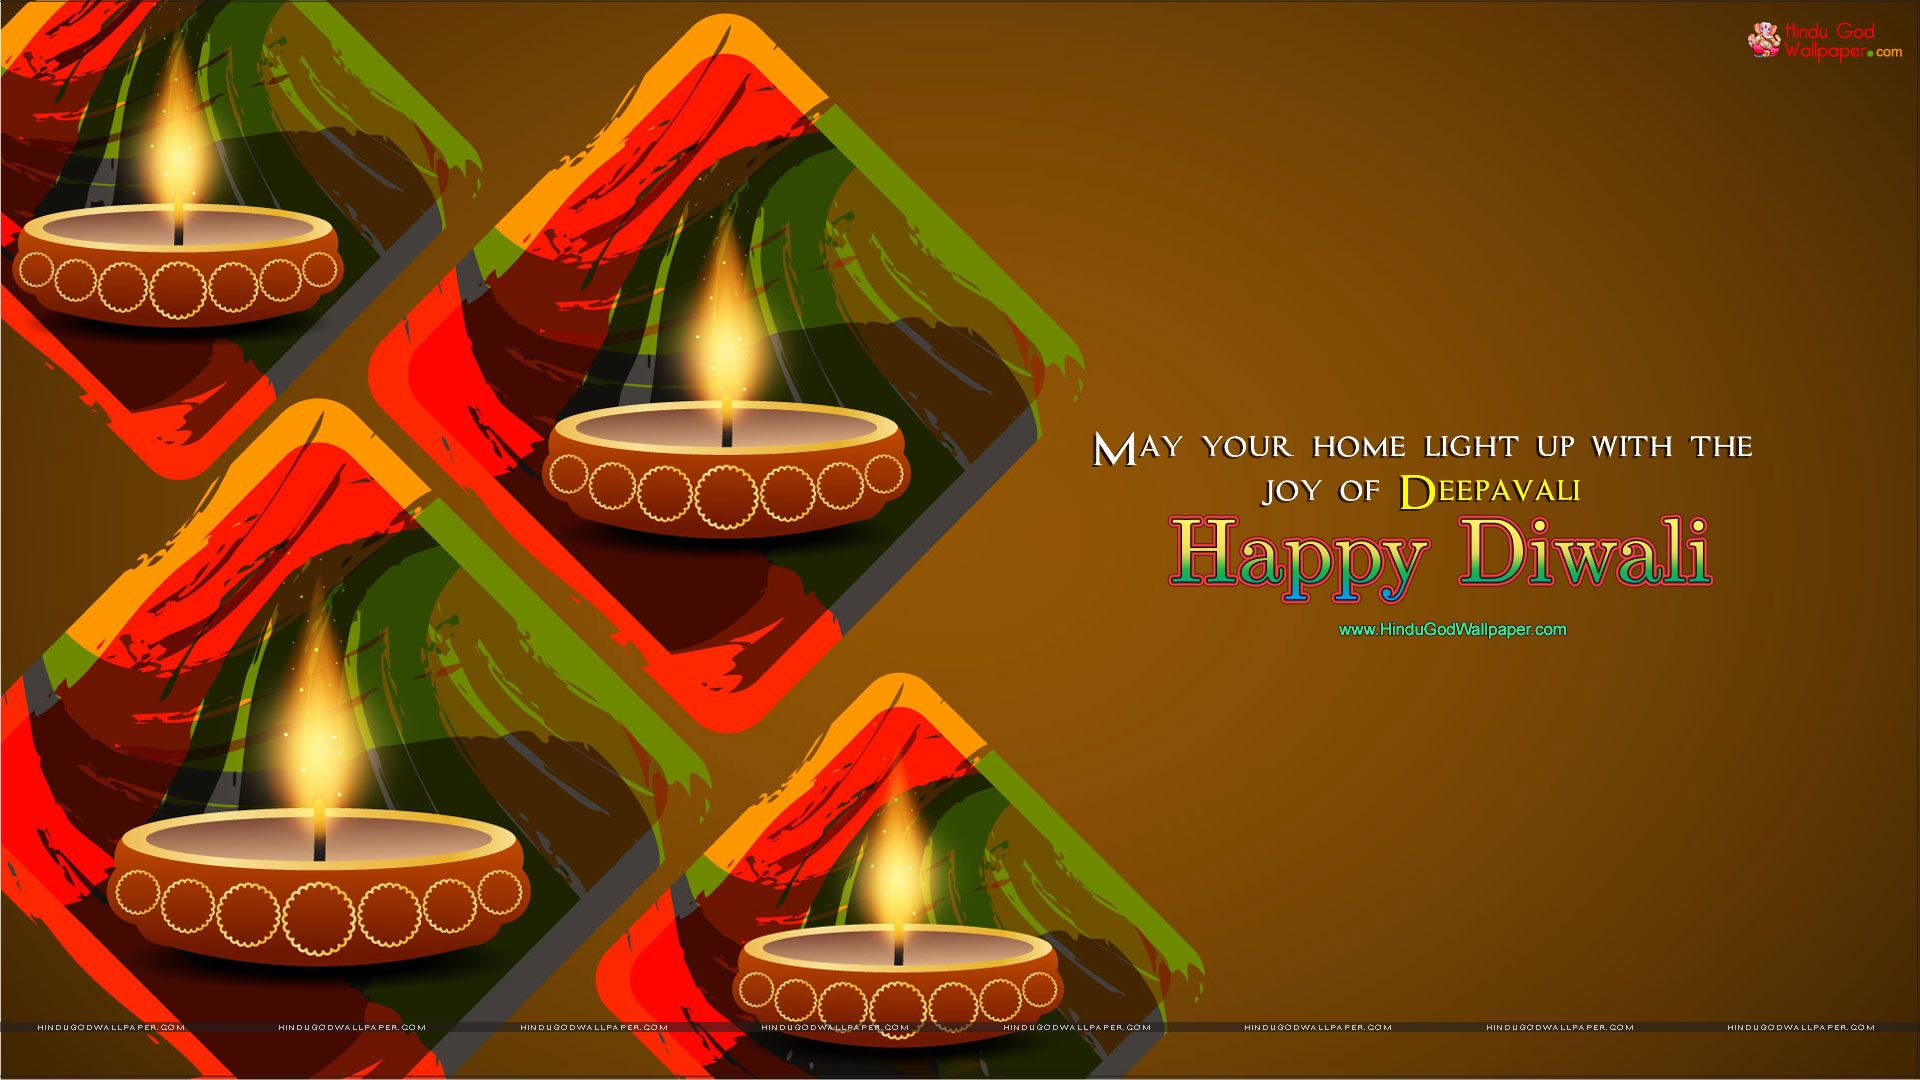 diwali wallpapers for desktop in hd 2013 download